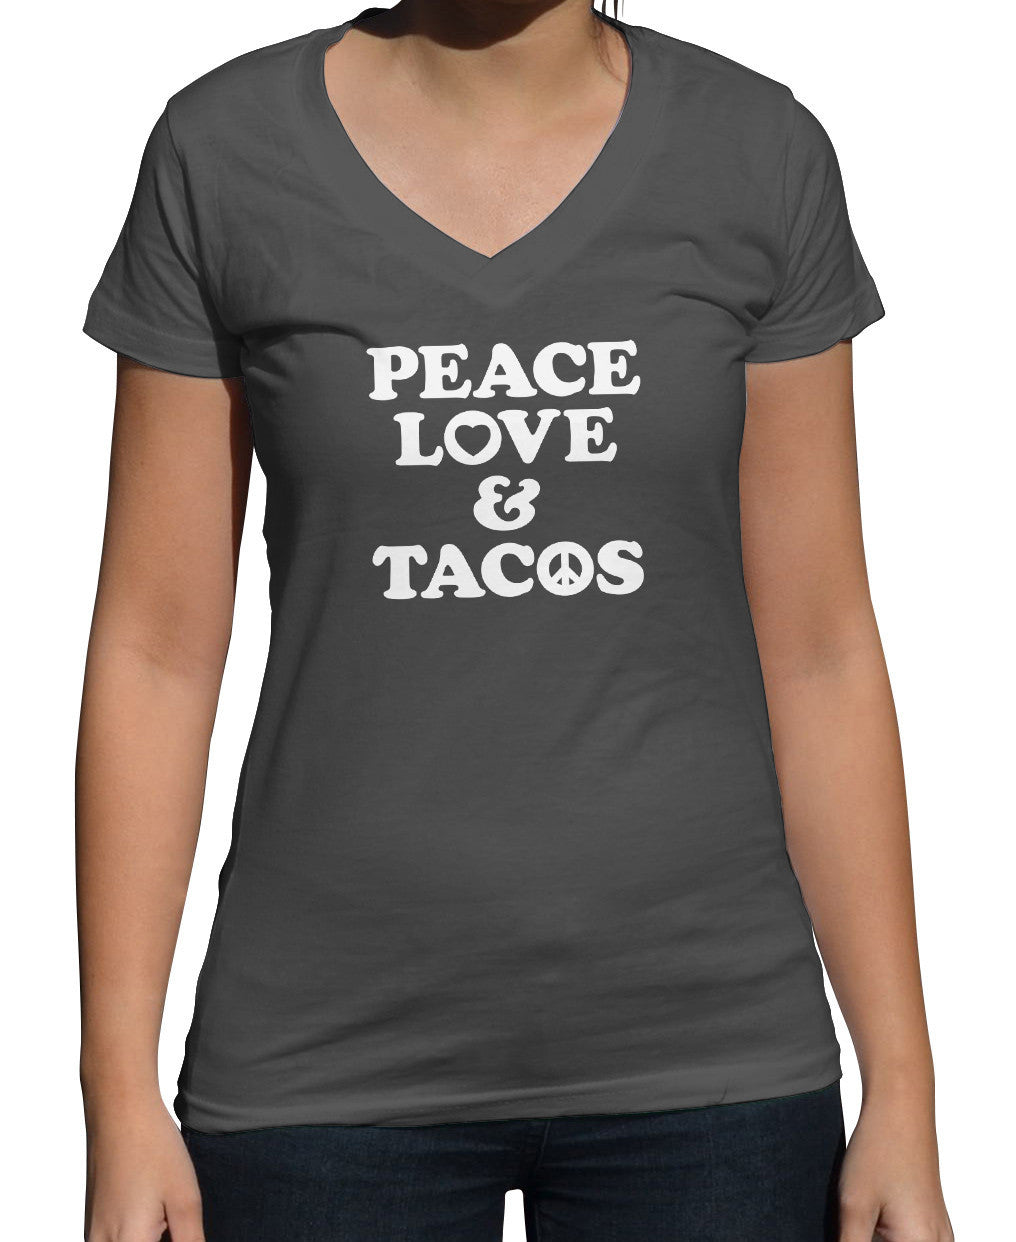 Women's Peace Love and Tacos Vneck T-Shirt